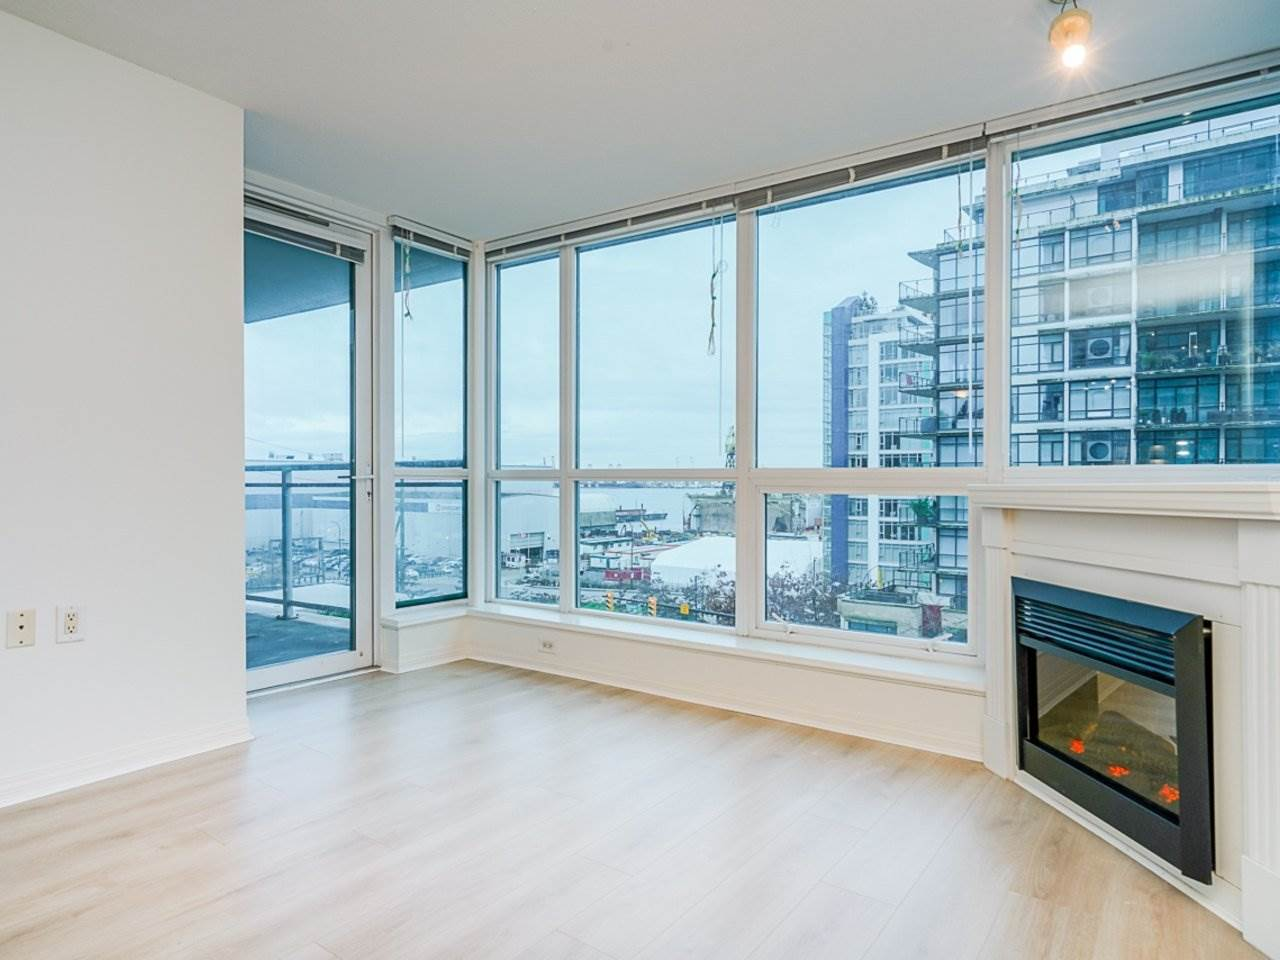 604 188 E ESPLANADE - Lower Lonsdale Apartment/Condo for sale, 2 Bedrooms (R2528391) - #13